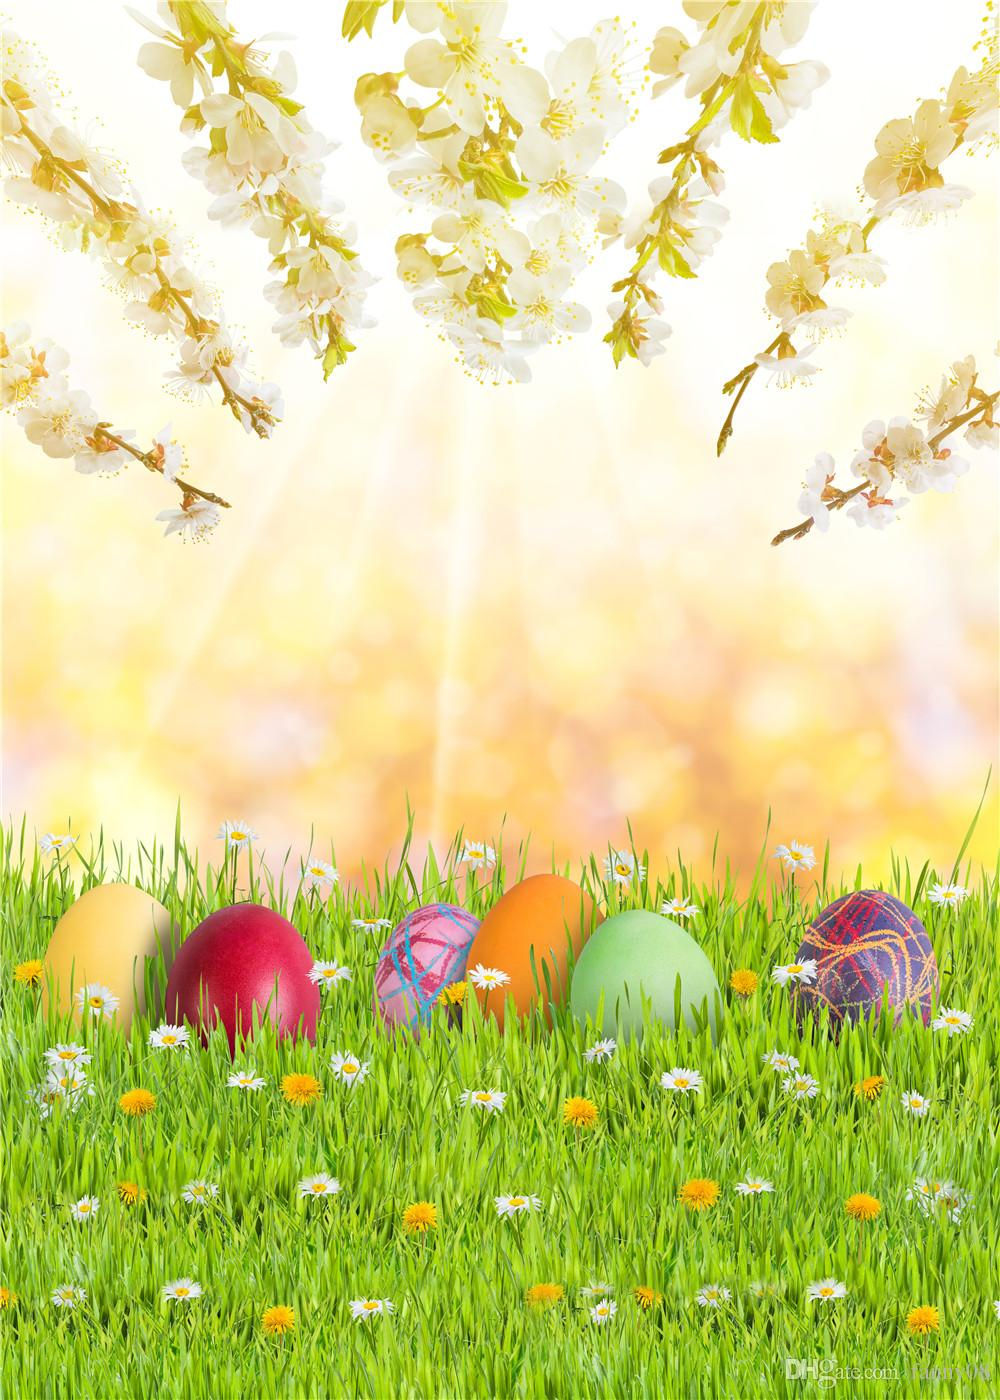 Seamless Easter Photo Studio Background Red Eggs Flowers Photographic Backdrops Natural Scenery Spring Backgrounds